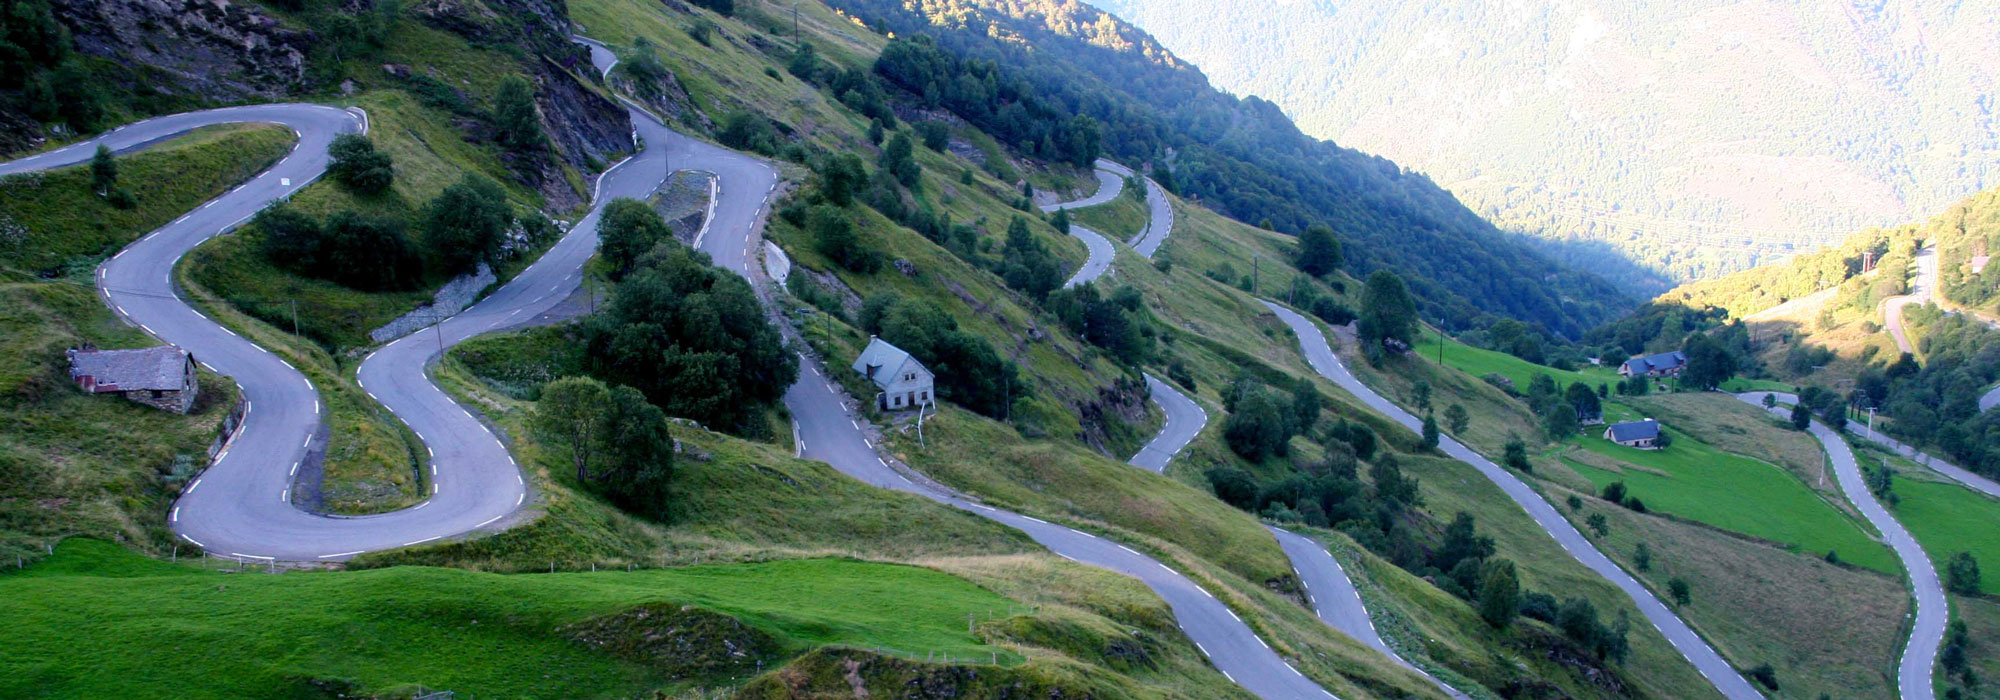 pano-lacets-pyrenees-bike-hotel